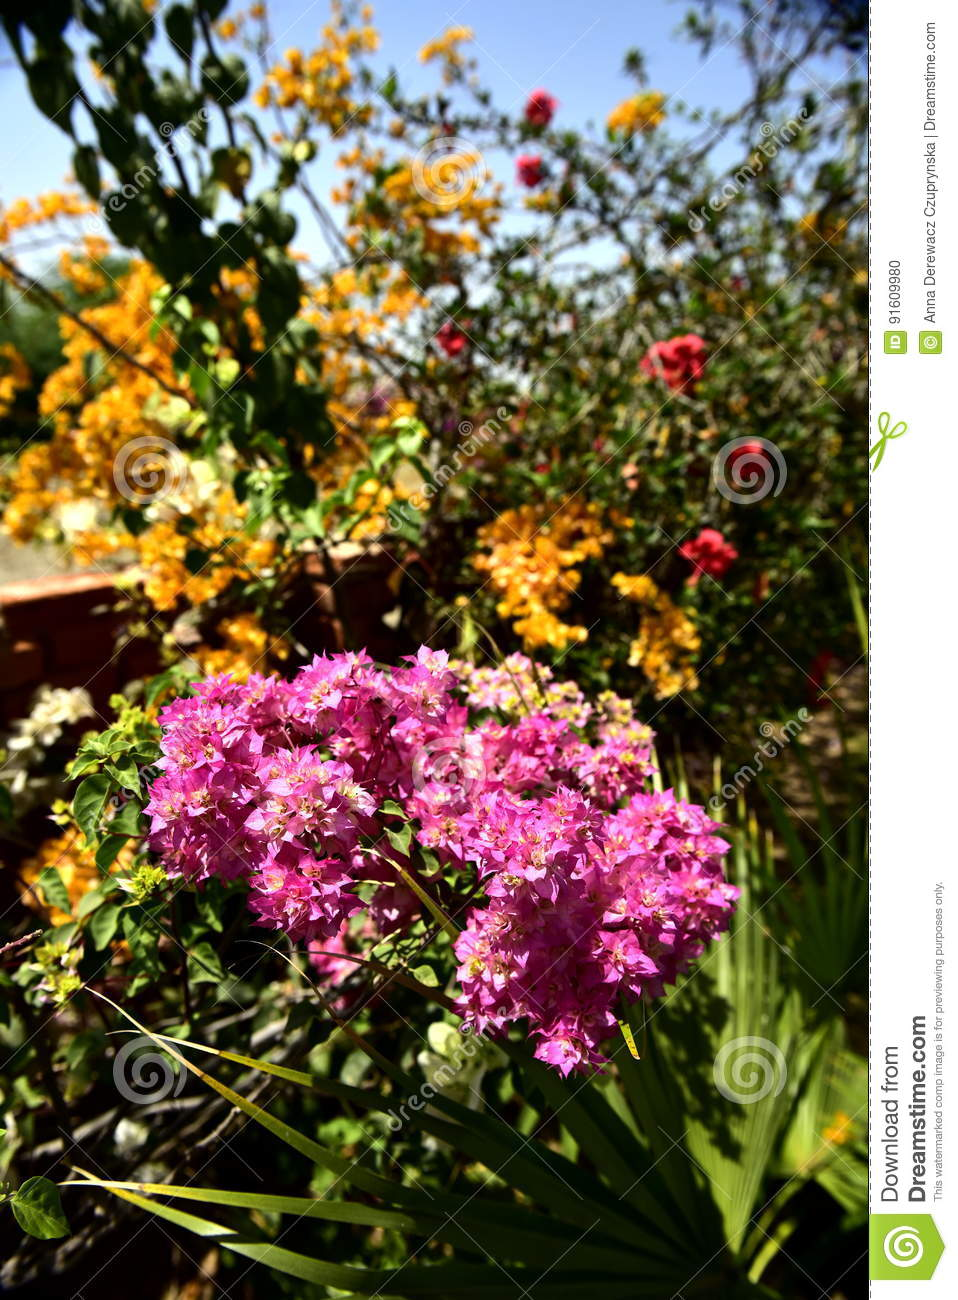 India Flowers In The Garden Stock Photo Image Of Also Kinds 91609980